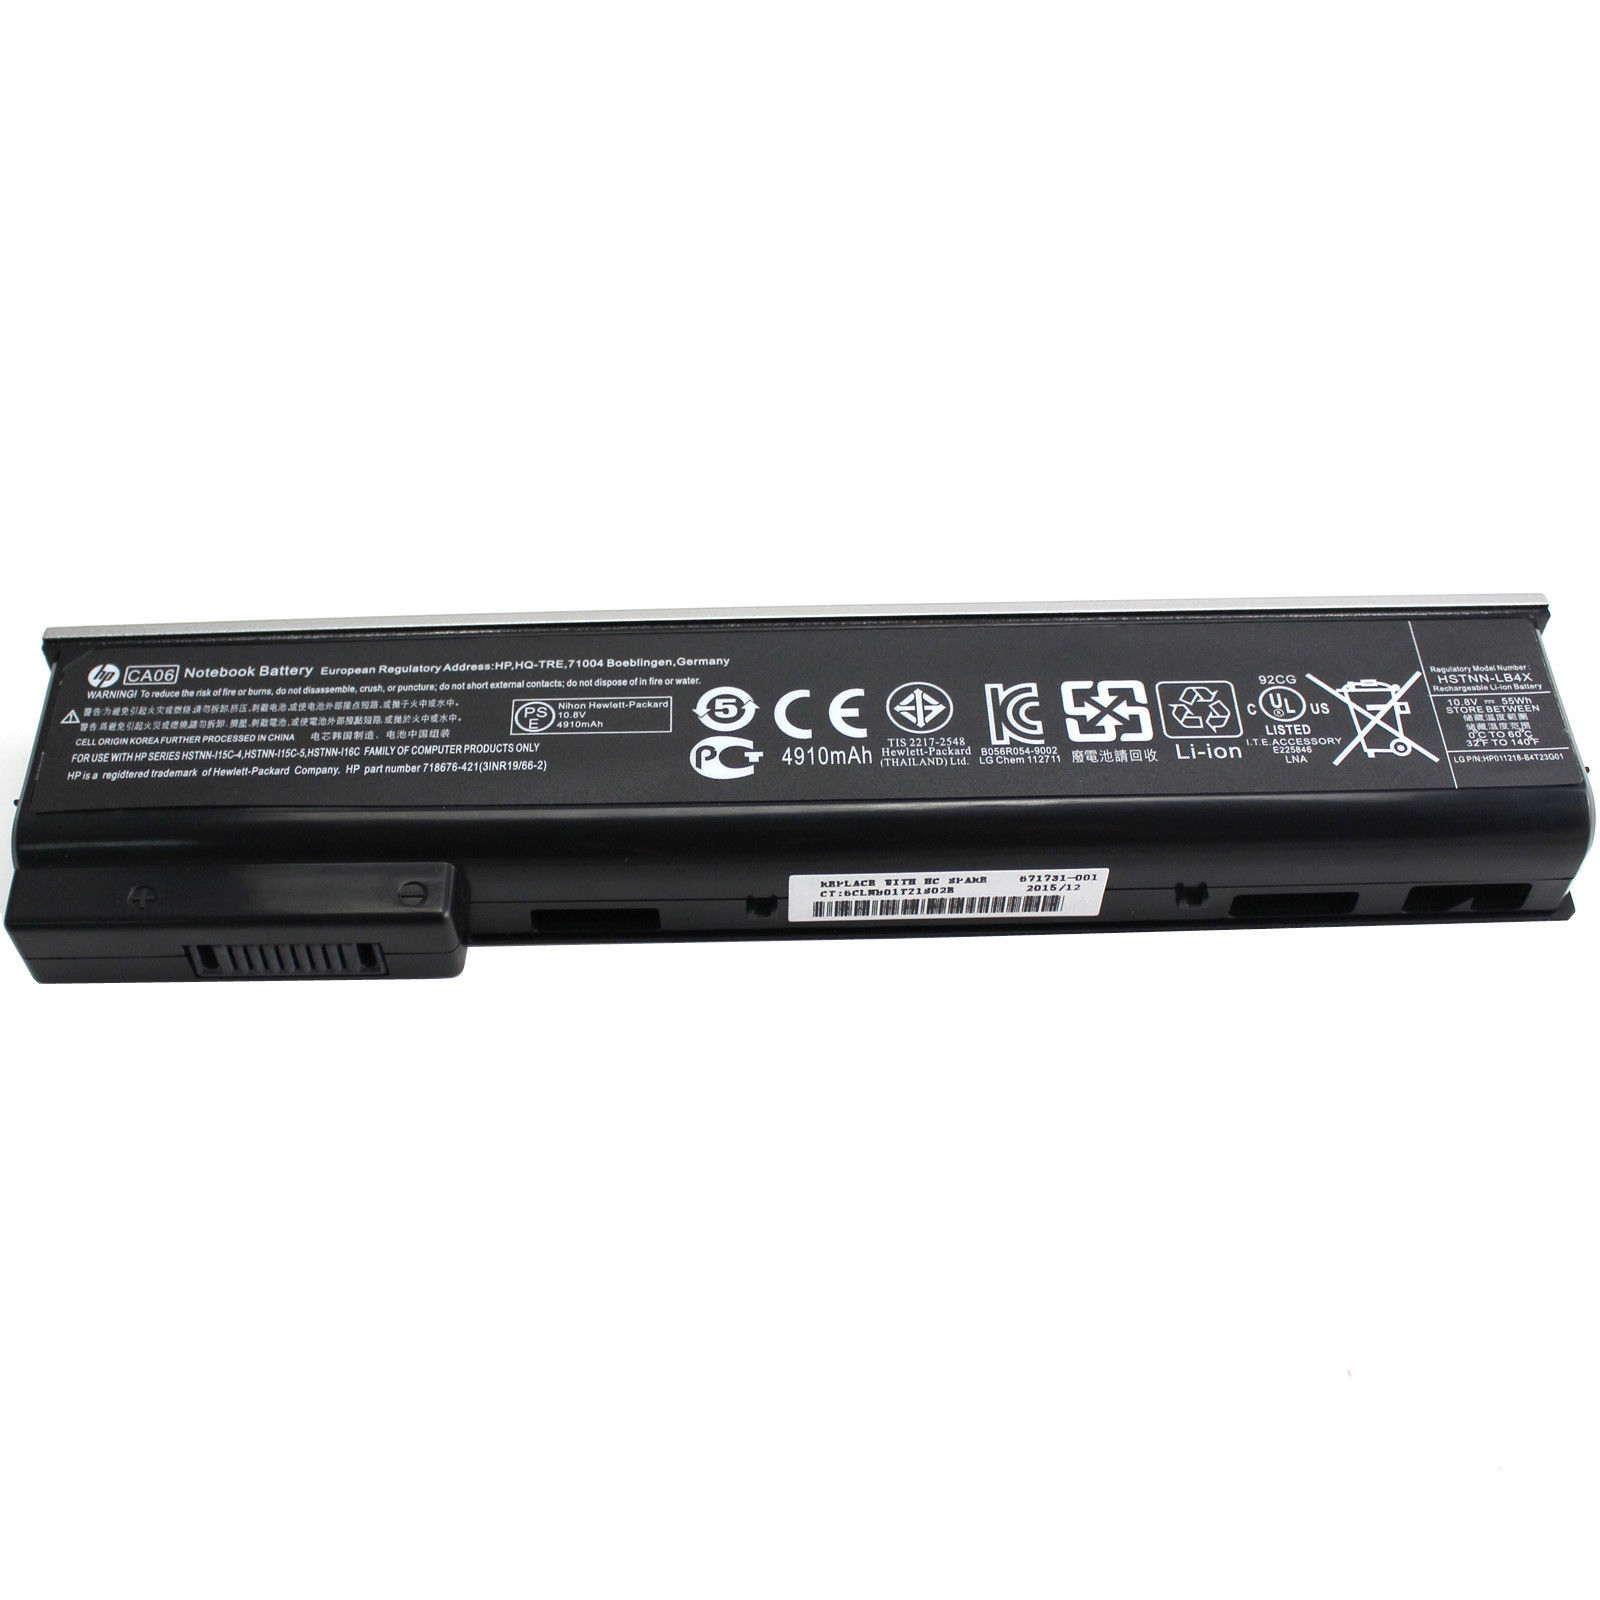 [C53] HP original Battery CA06 CA09 11 1V 4910mAh HSTNN-LB4Z 718678-421 for  HP ProBook 640 G1 645 G1 650 G1 655 G1 Series